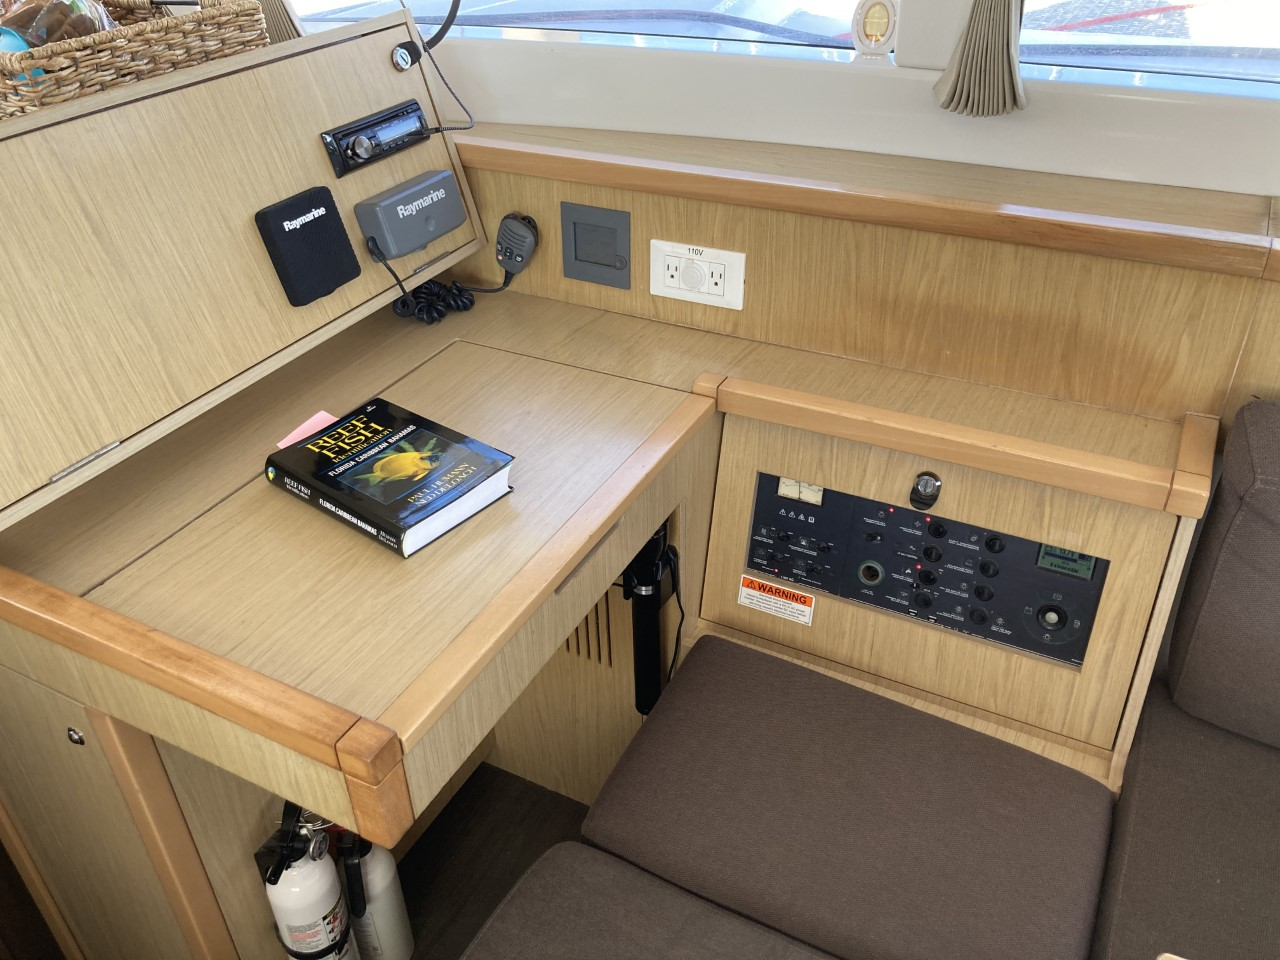 2014 lagoon 39 catamaran CARPE DIEM nav station